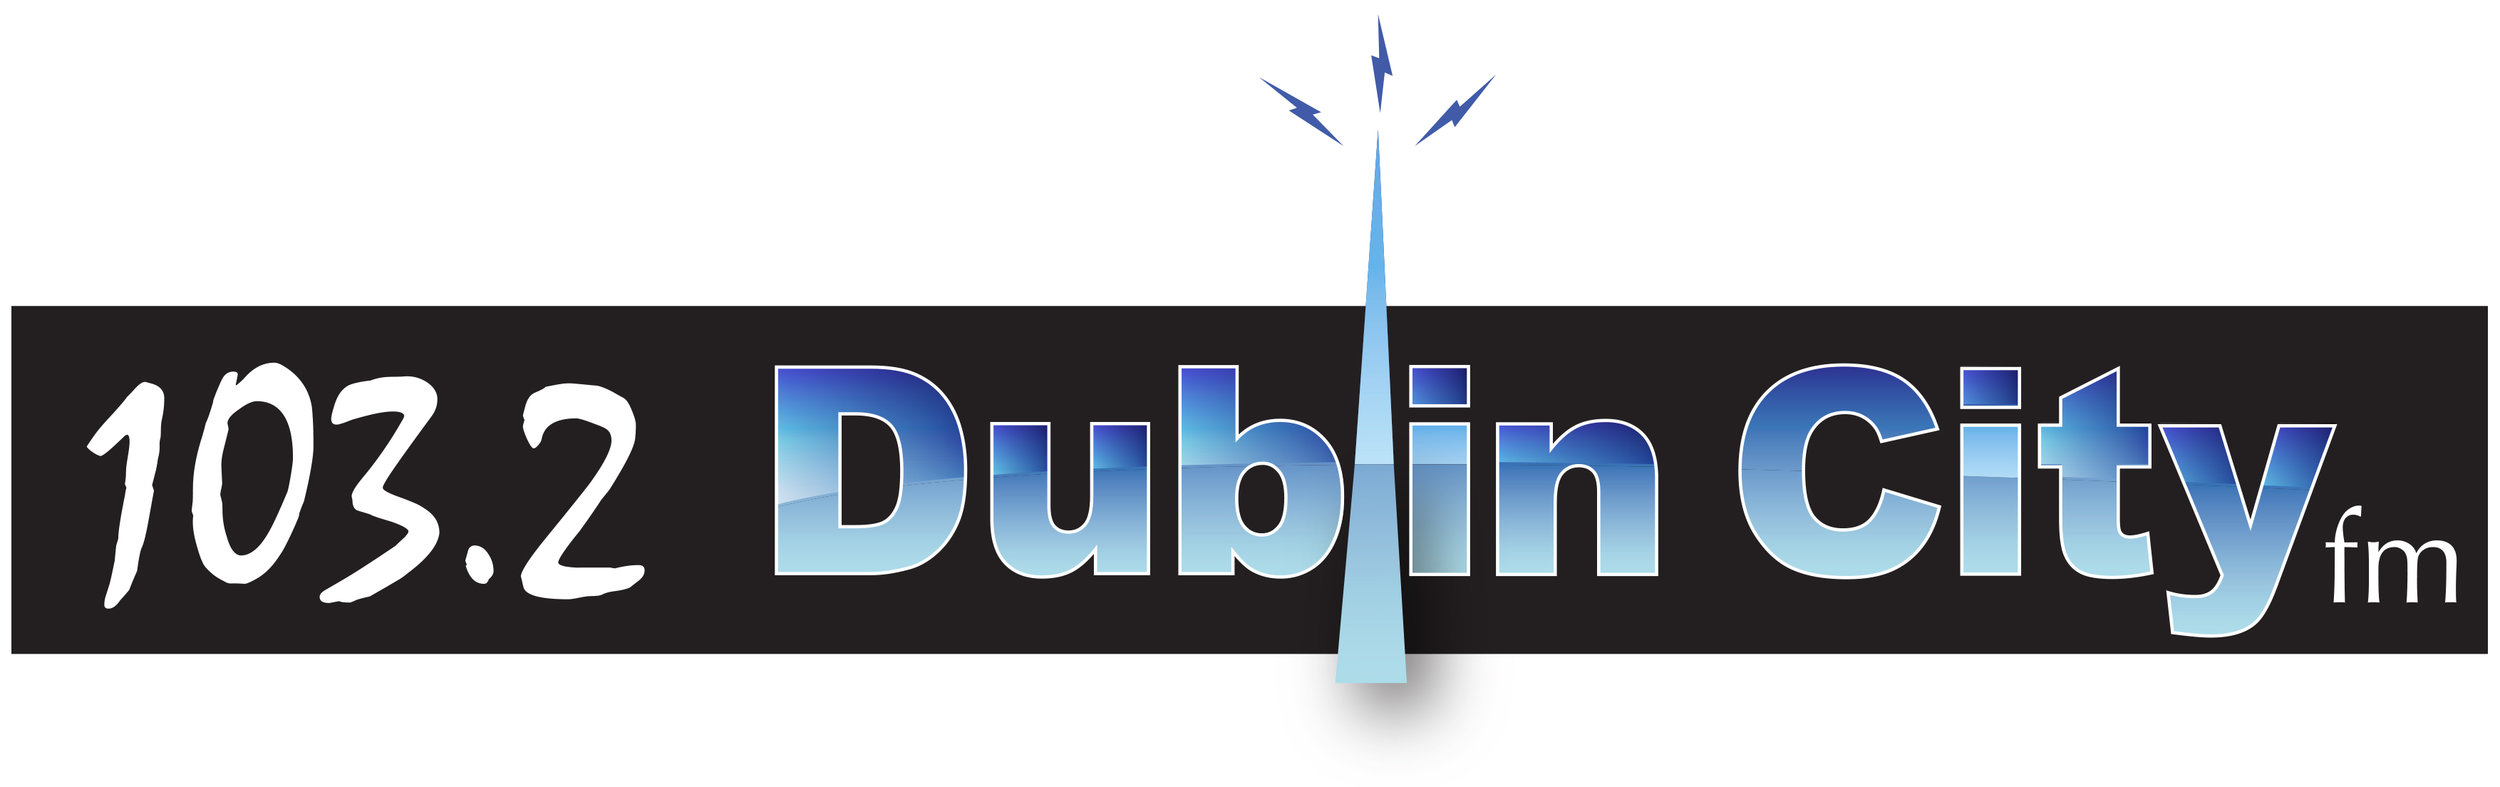 Dublin City FM: What Will Change the World